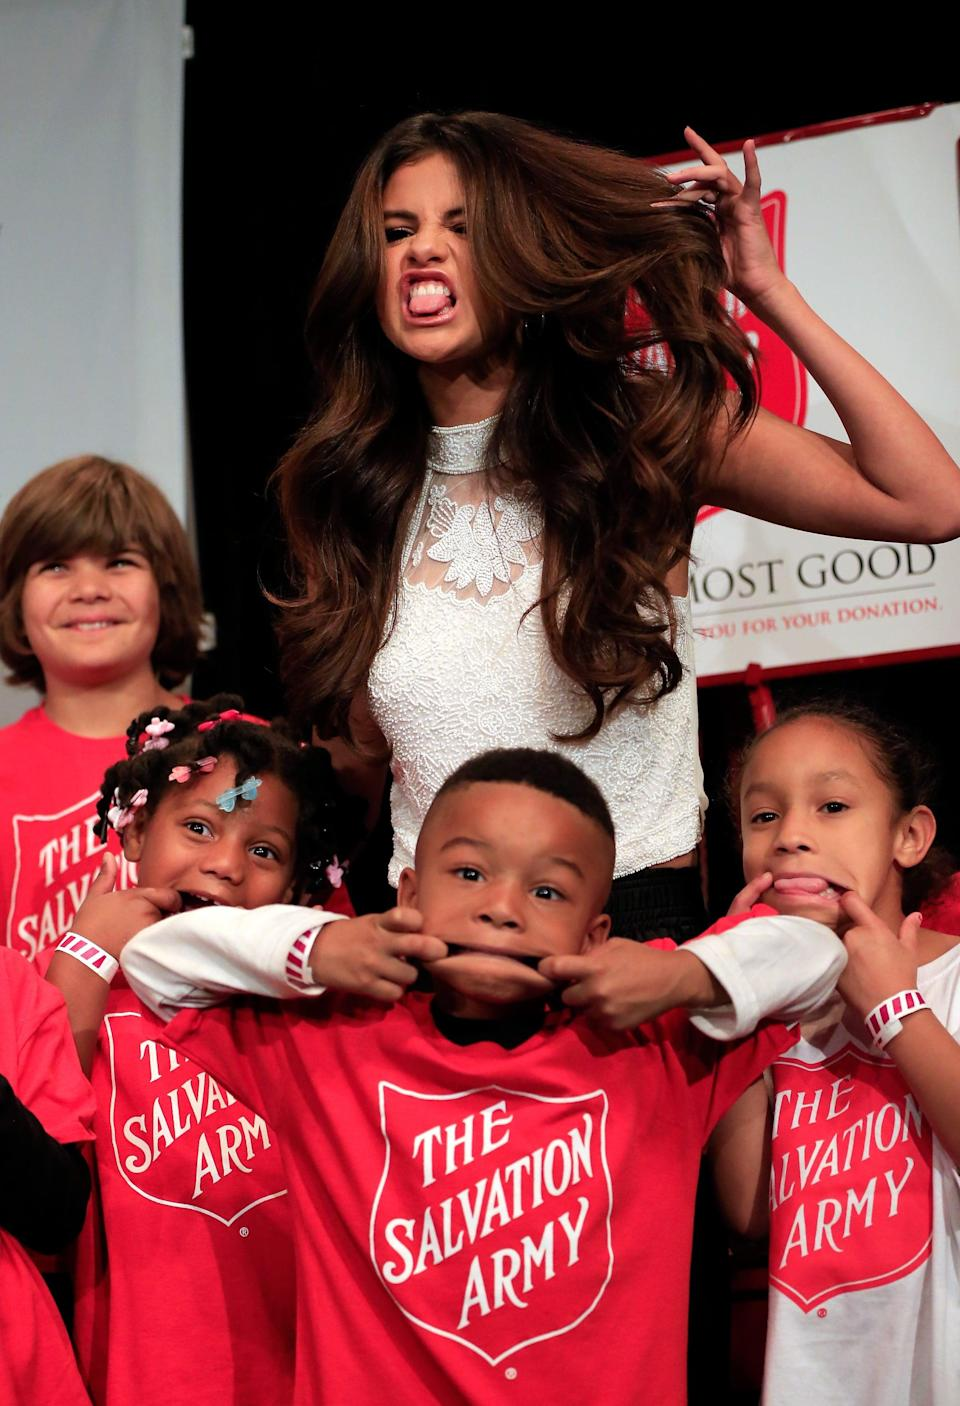 <p>She showed off her silly side with a group of kids at a Salvation Army event in Texas.</p>